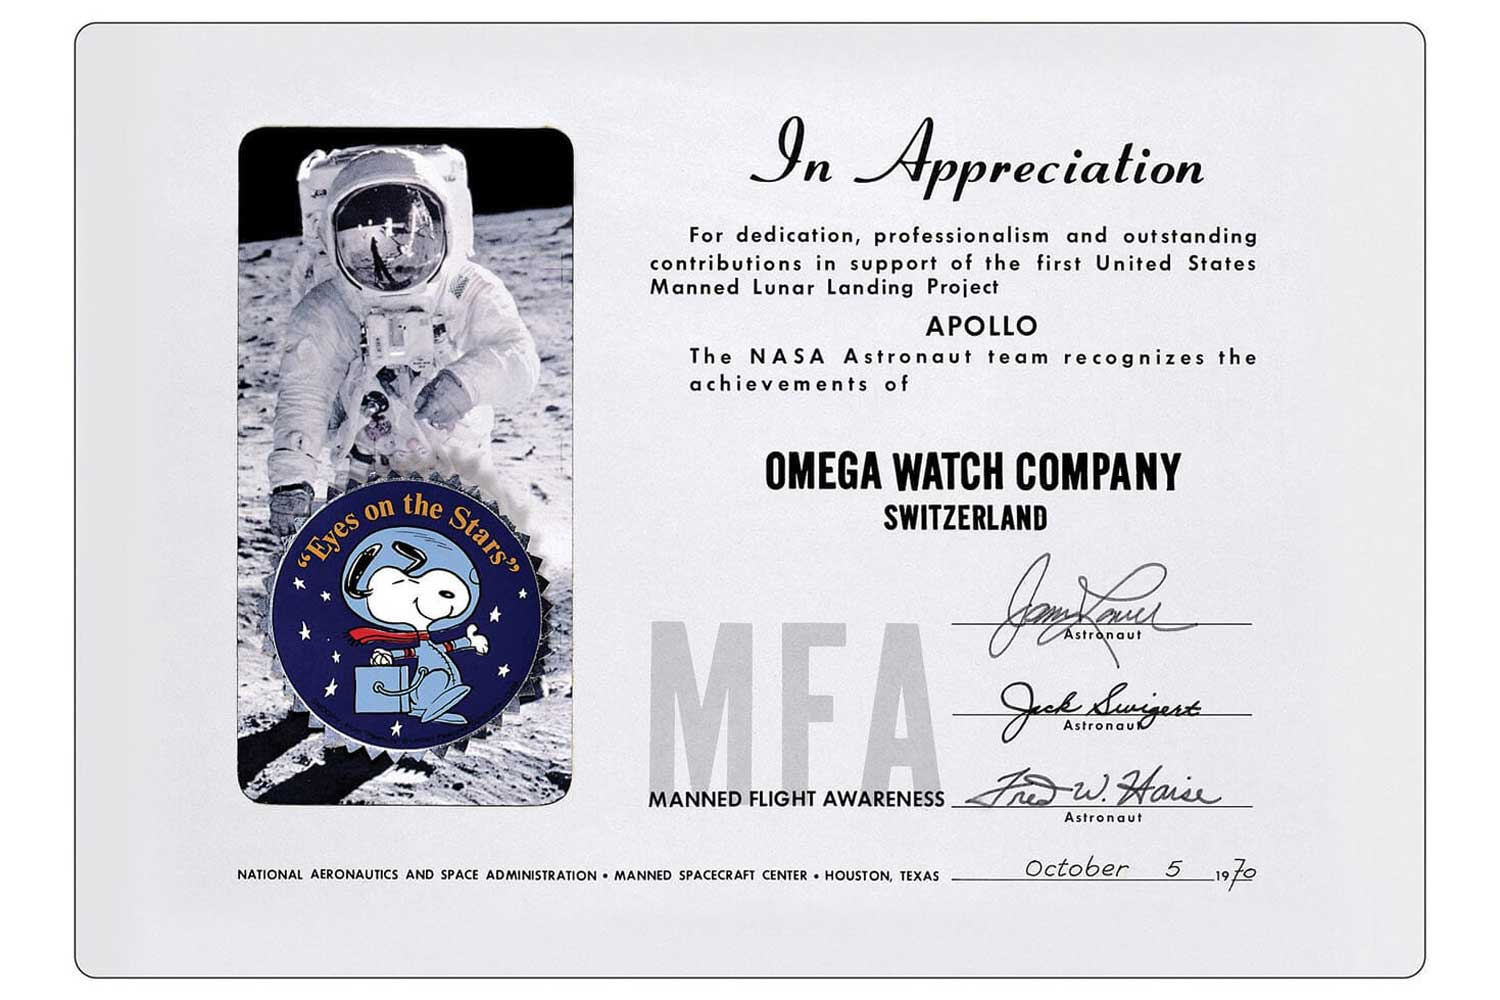 The Silver Snoopy Award presented to Omega by Jim Lovell, Jack Swigert and Fred Haise of the Apollo 13 crew.